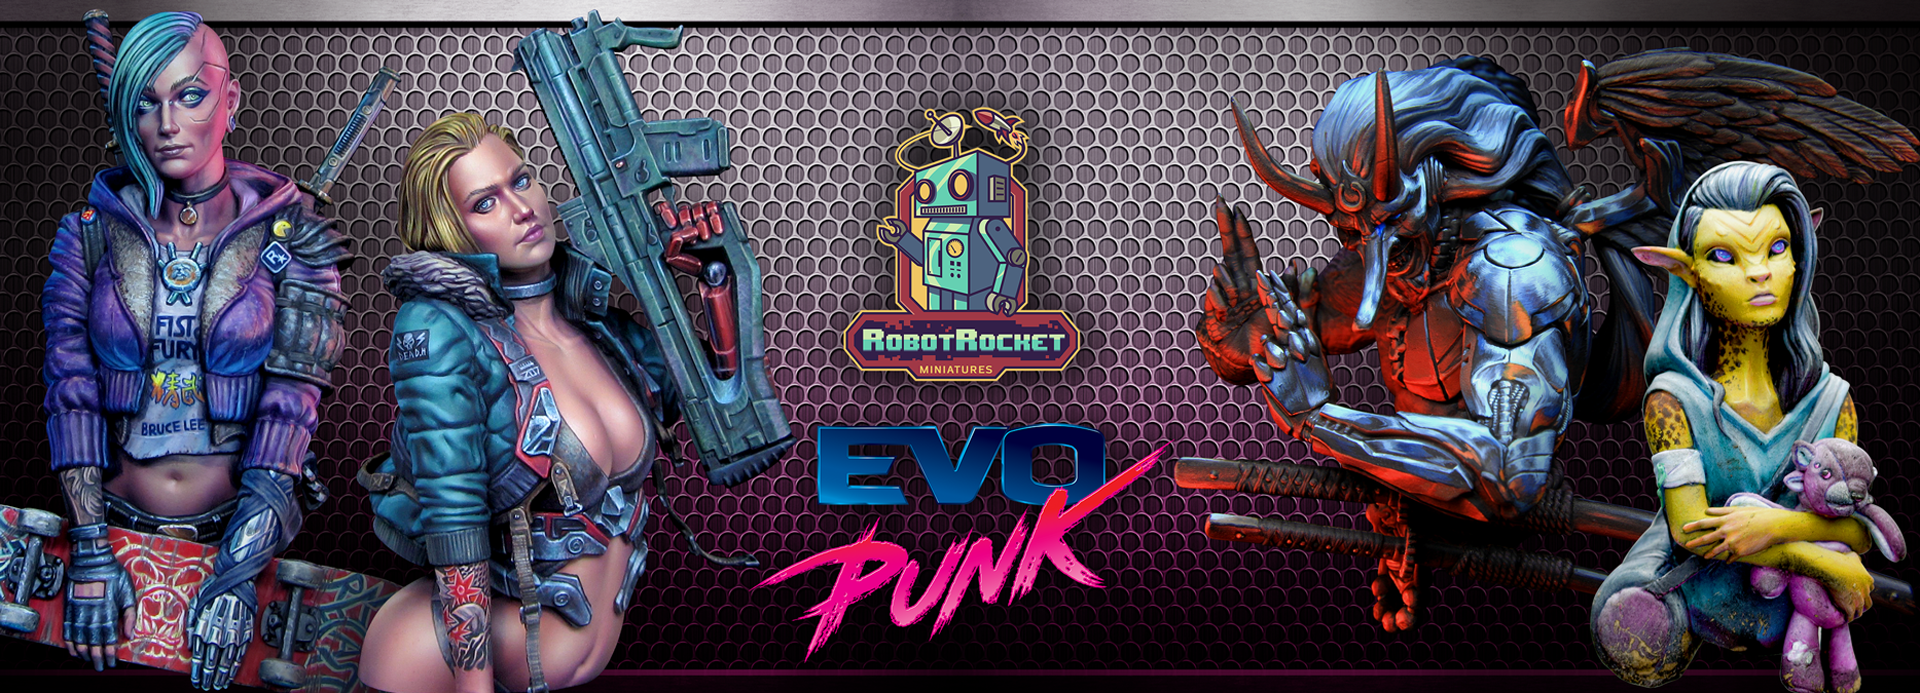 EVO PUNK SERIES BANNER